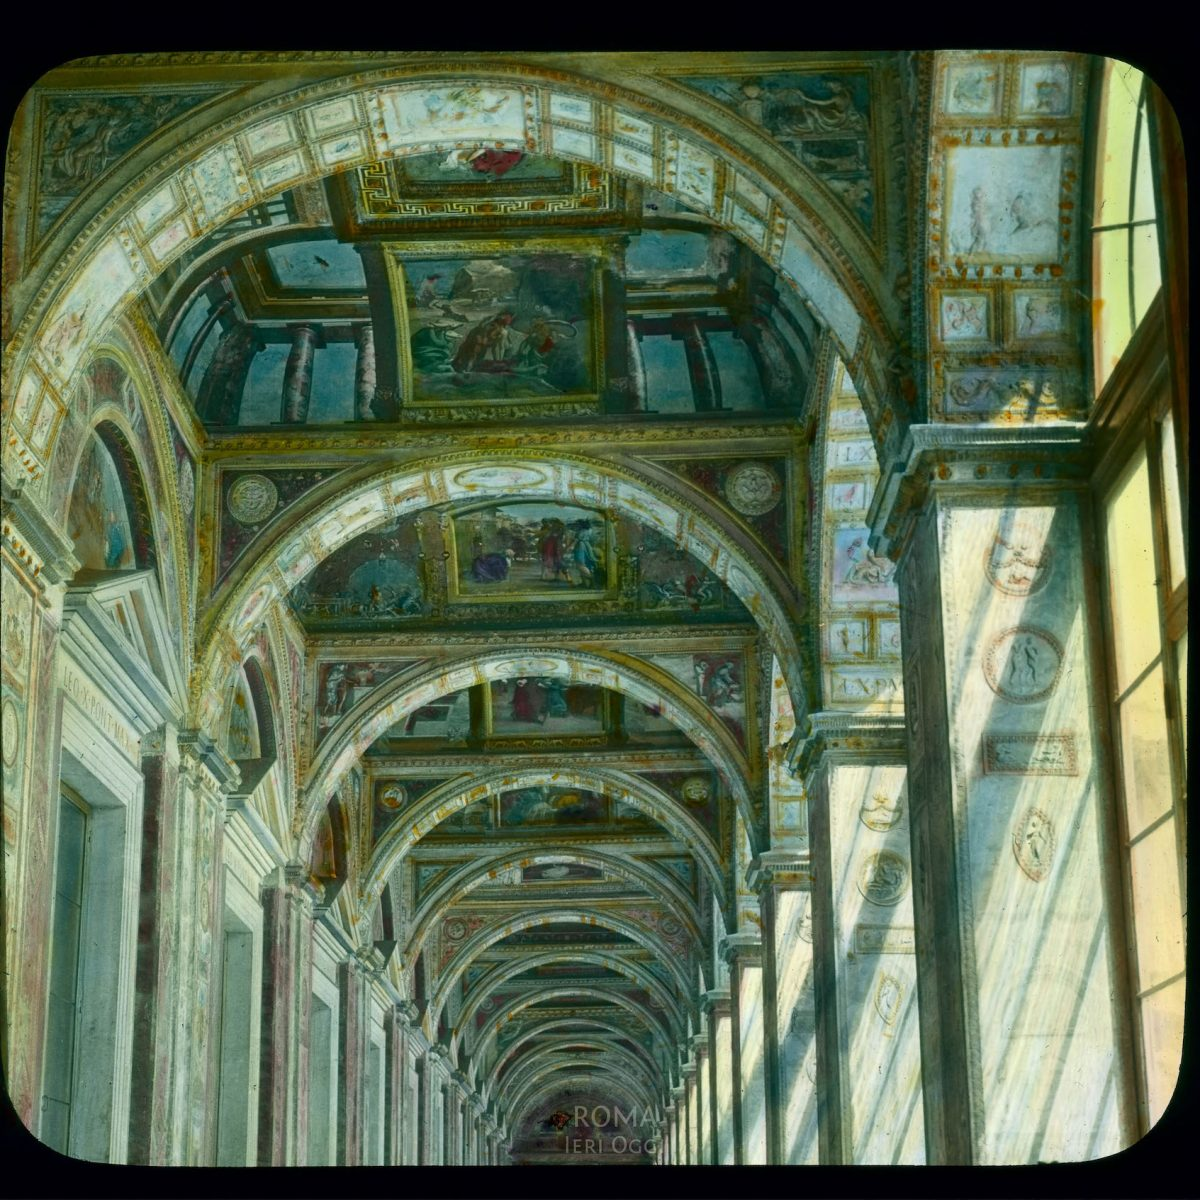 Vatican City. Raphael Loggia (Loggia of Leo X): detail of ceiling View in tinted lantern slide, ca. 1919-1938. The painting dates from ca. 1518-1519.